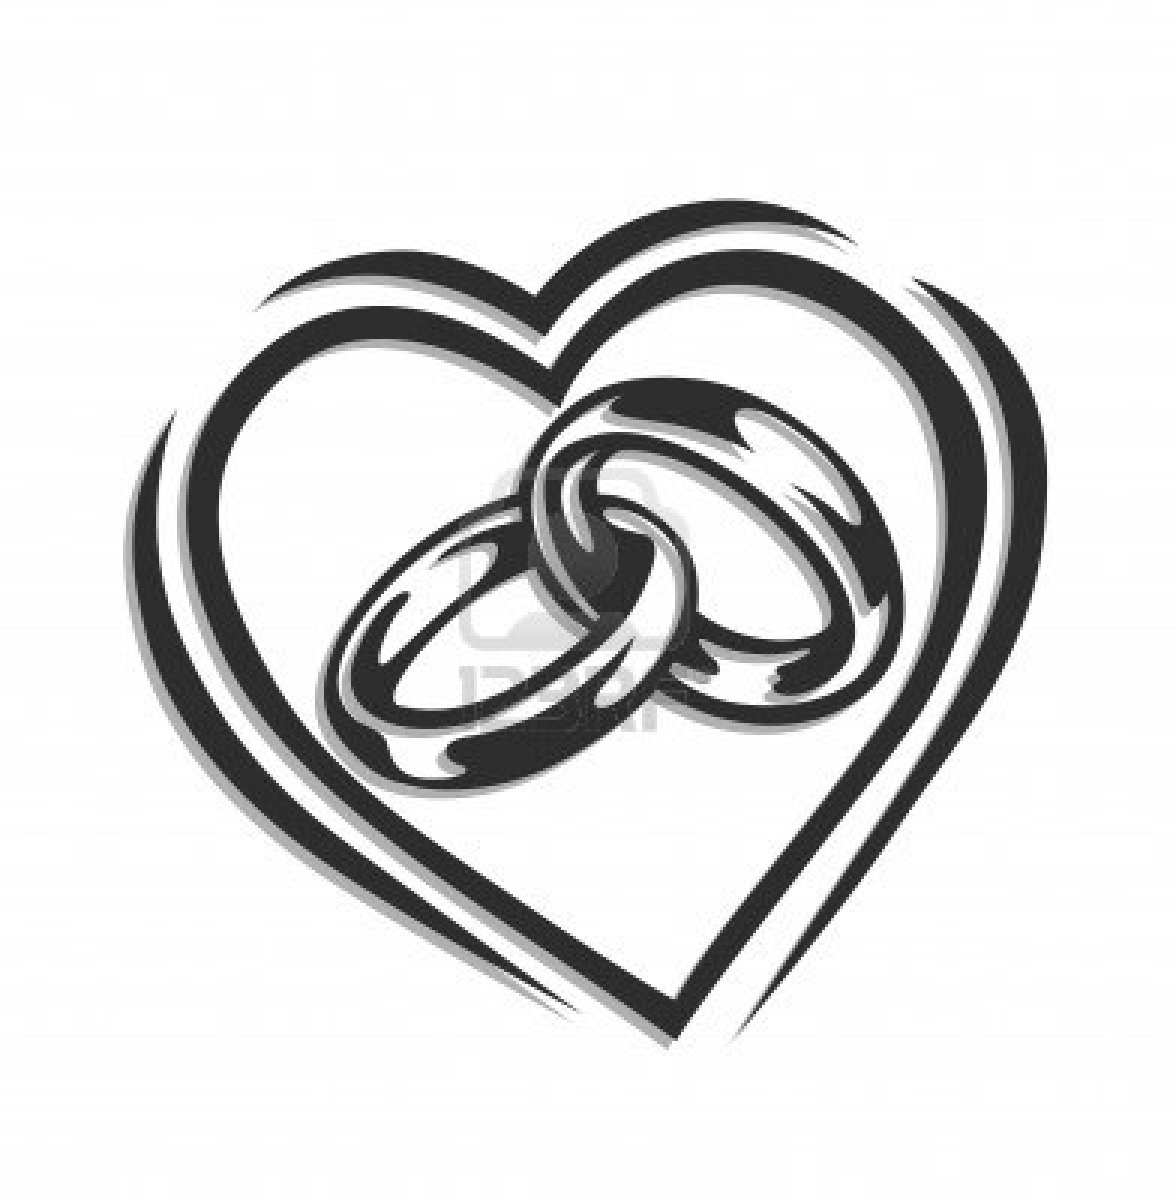 Remarkable Wedding Ring Clip Art Black and White 1176 x 1200 · 132 kB · jpeg